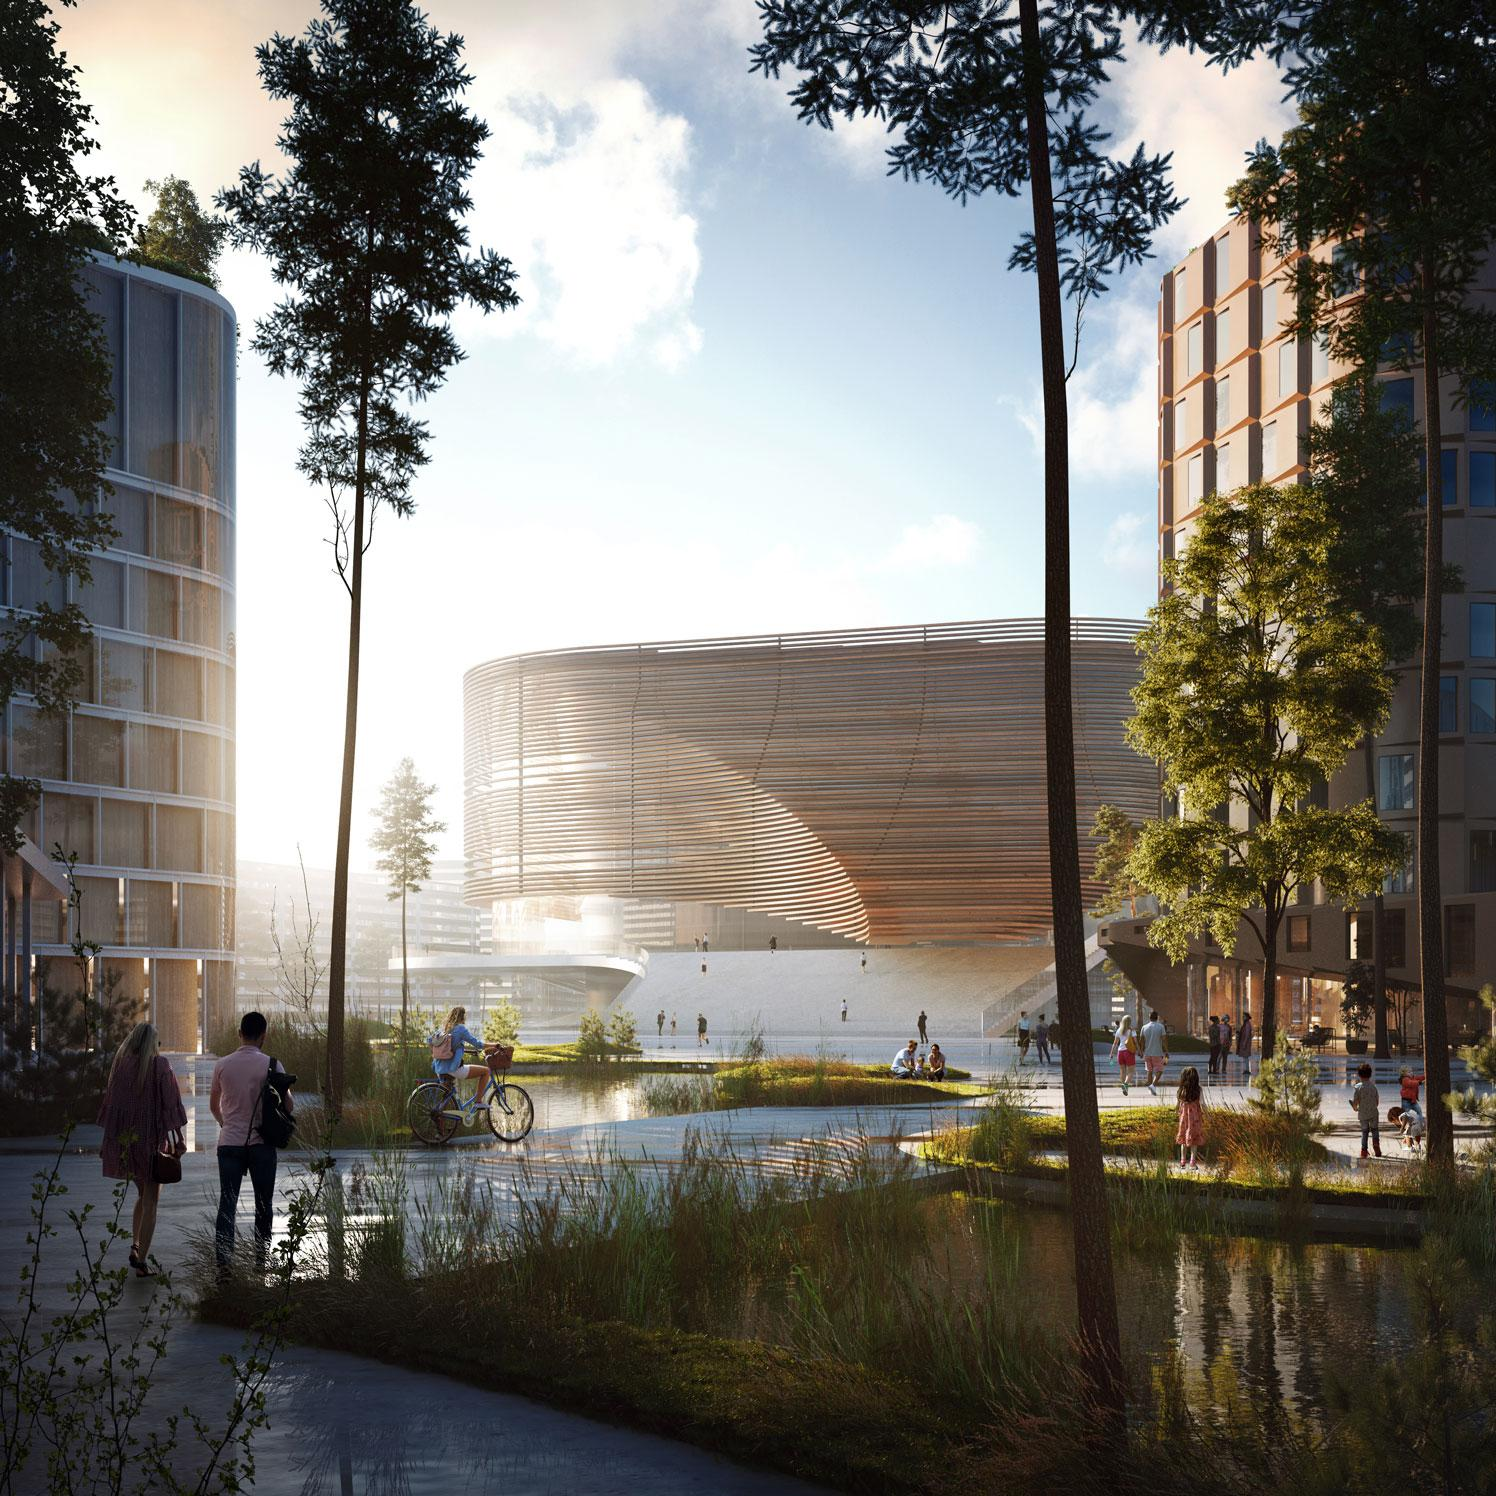 3XN's Bergen masterplan makes arena the city's hub